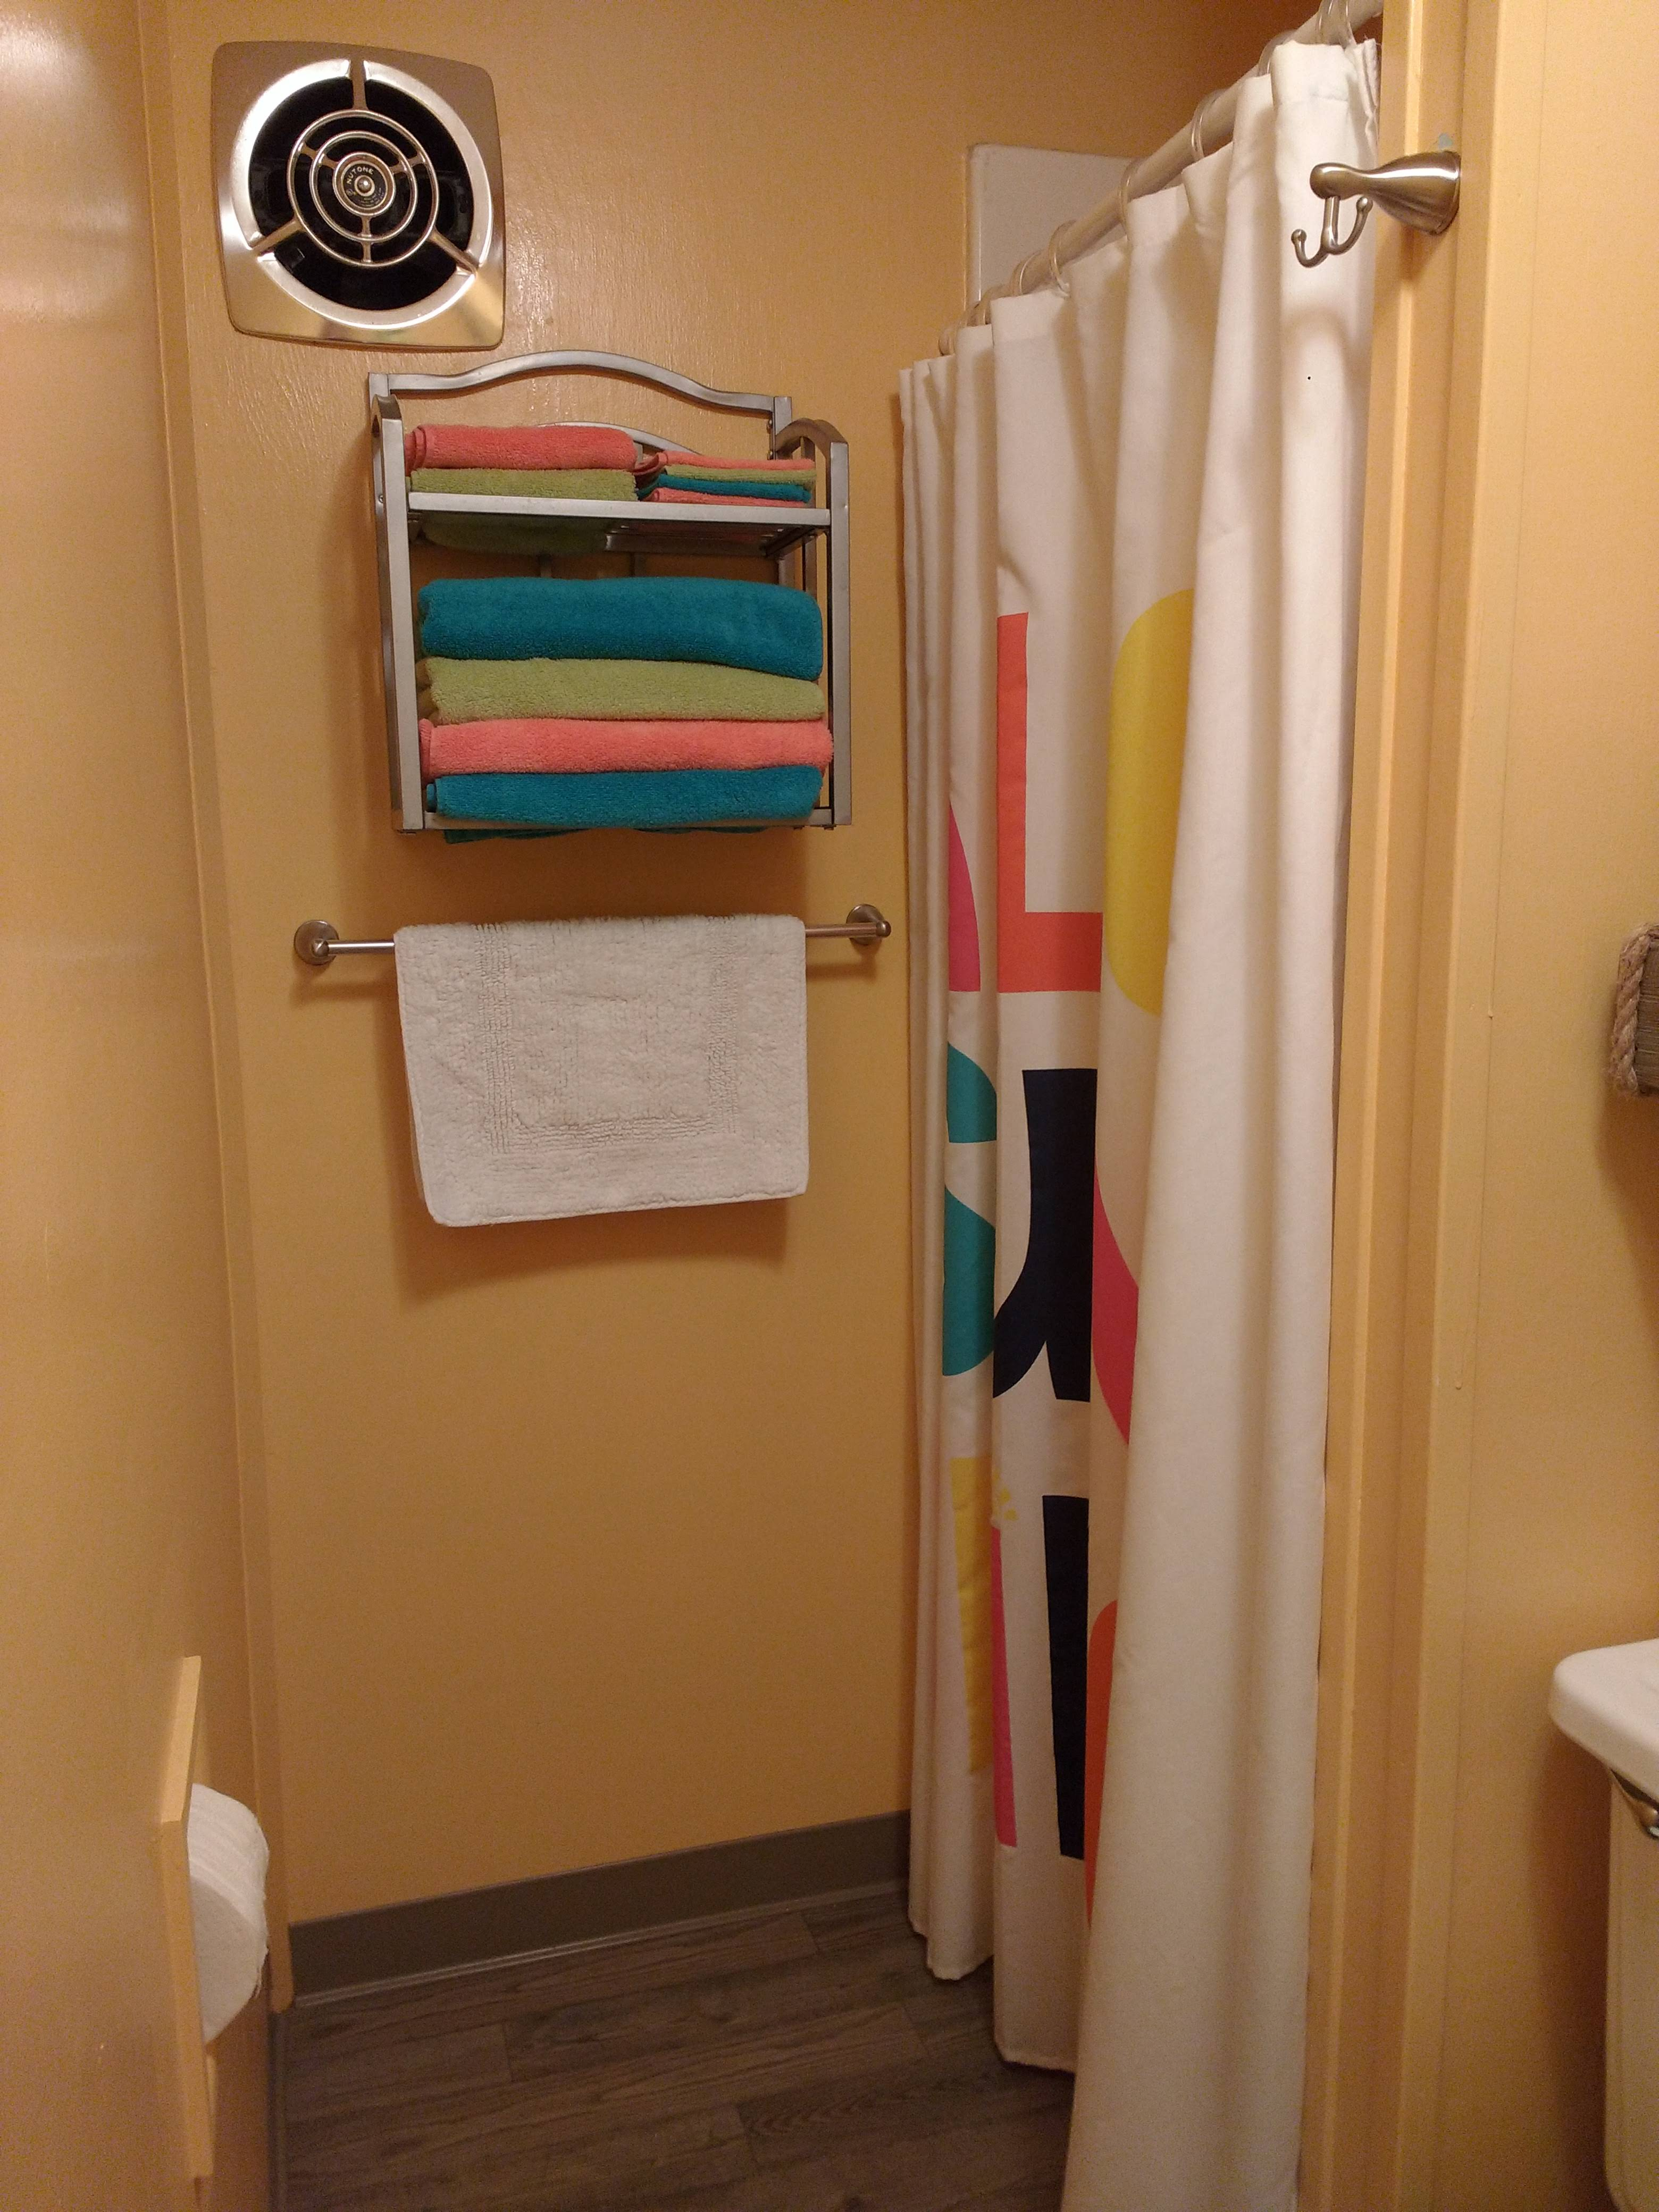 tiny travel chick incredible travel colorful corner airbnb shower